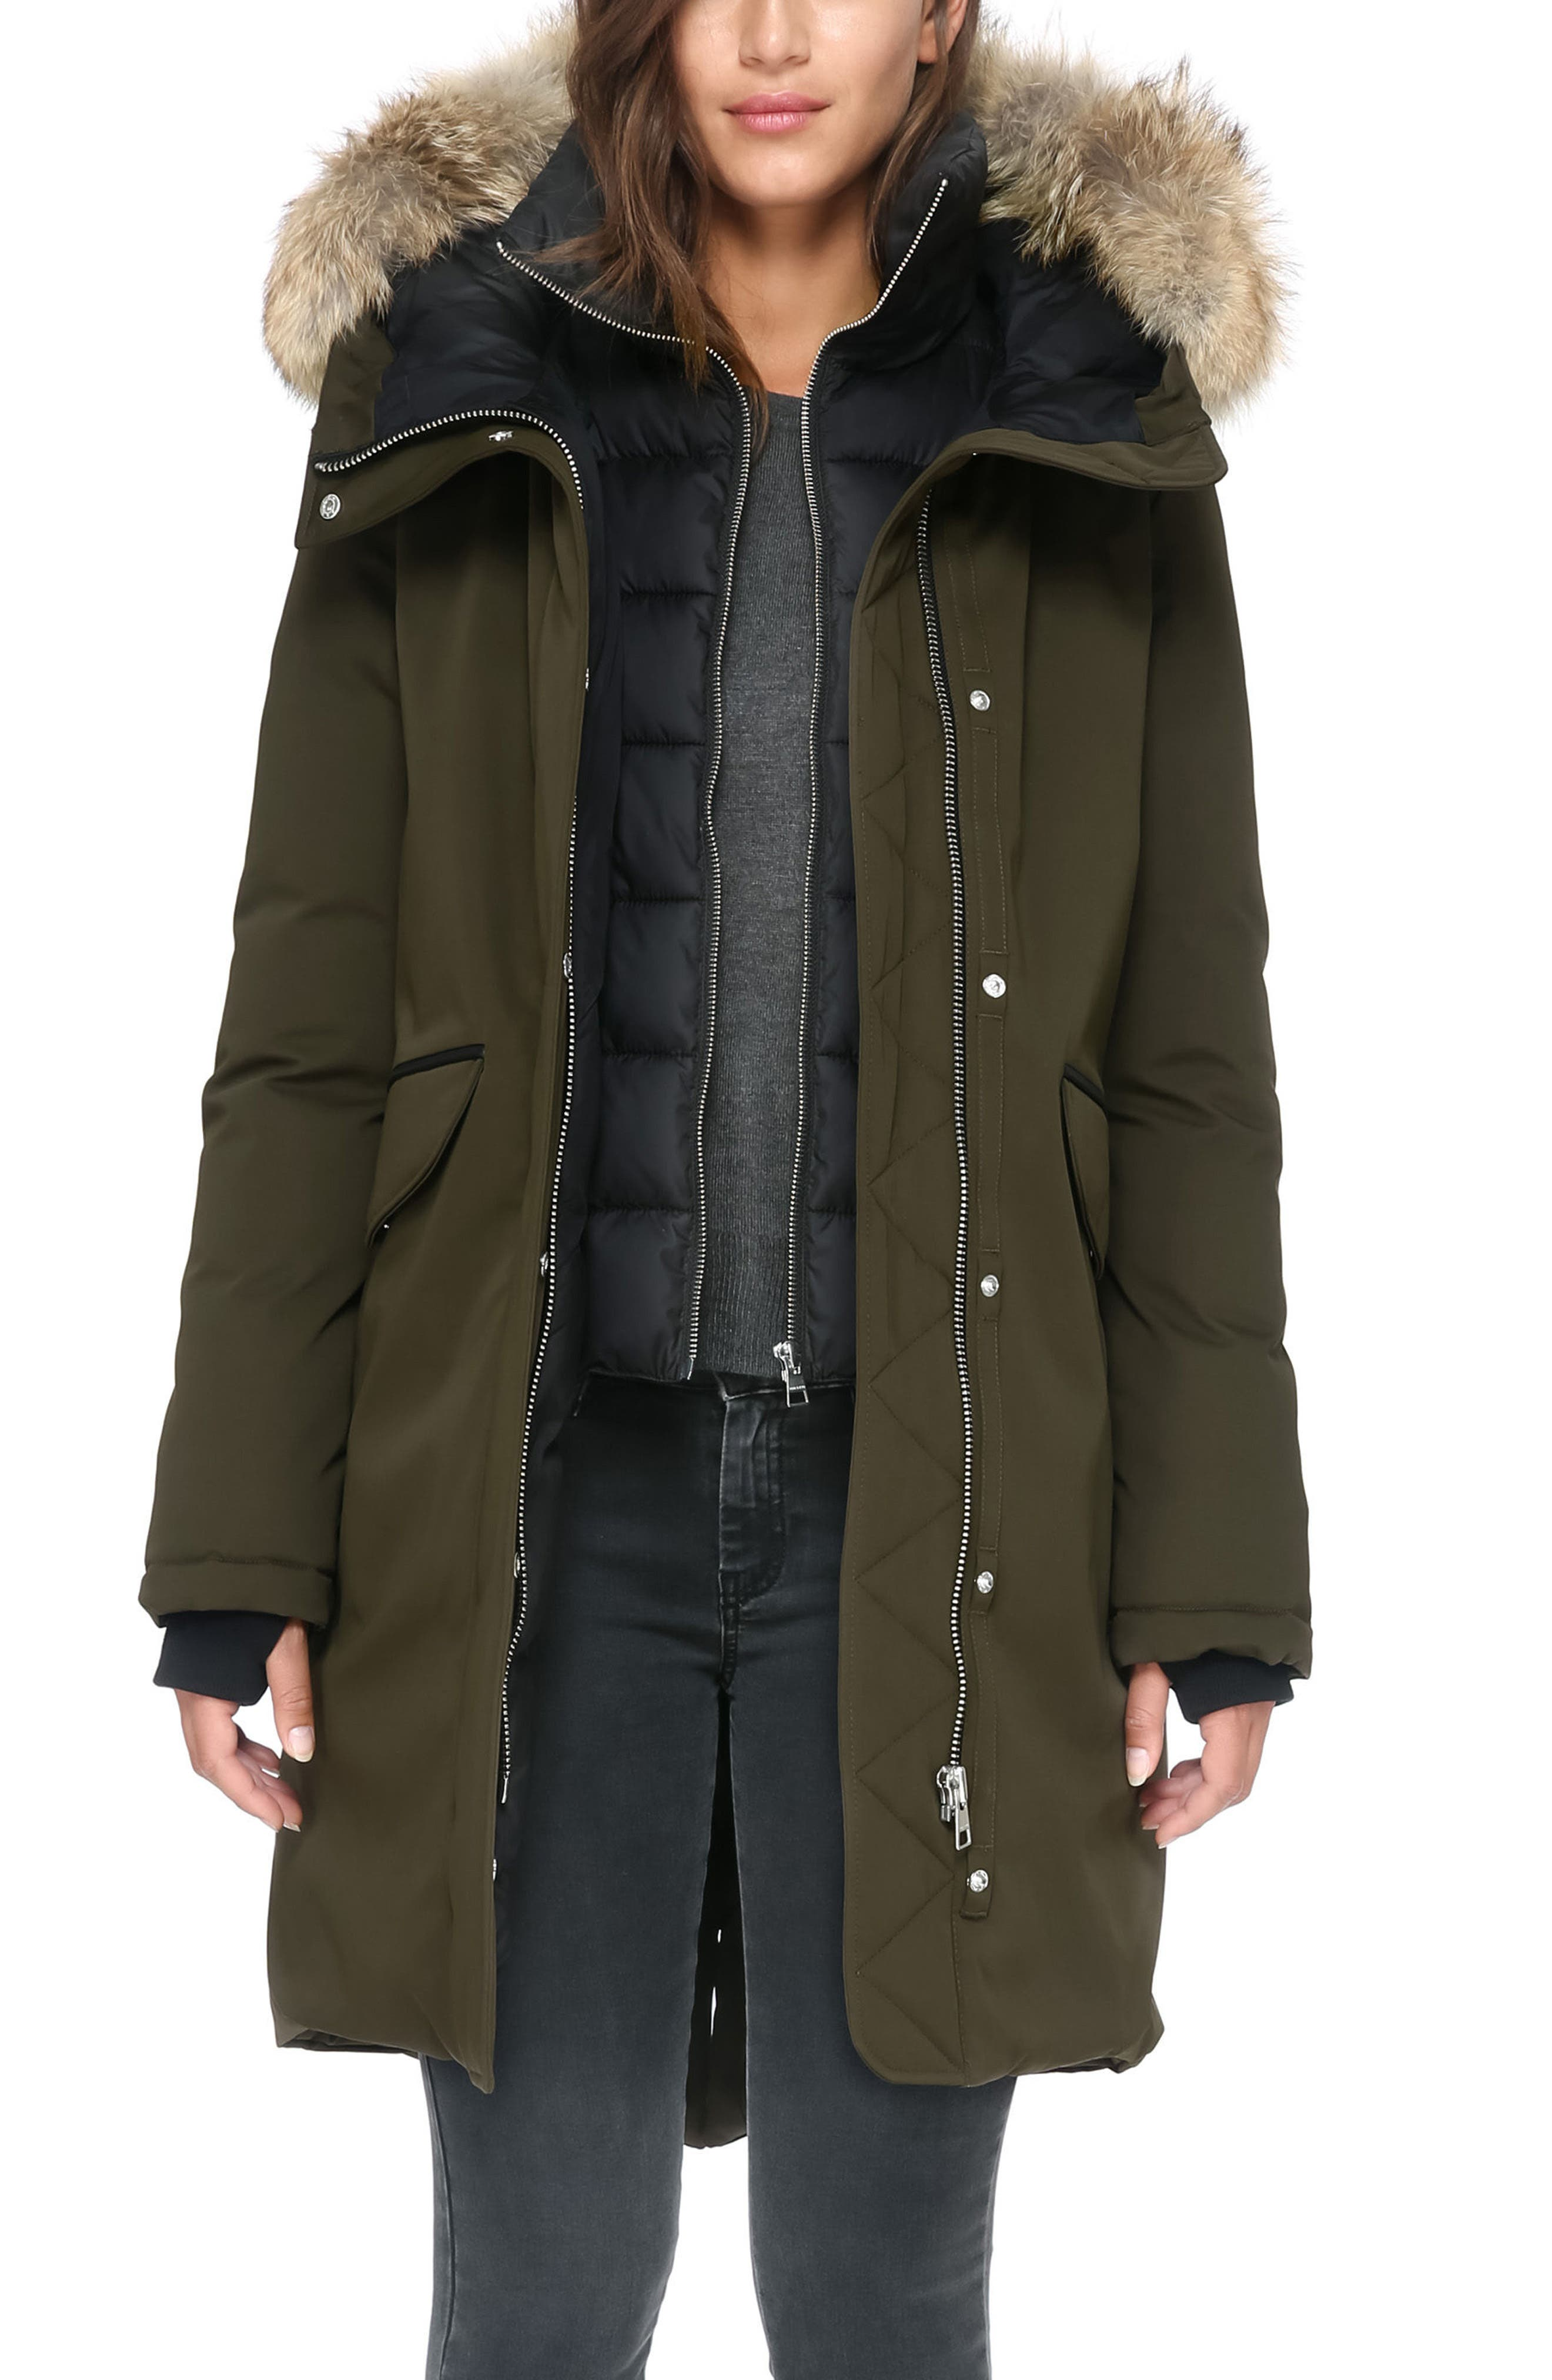 Alternate Image 1 Selected - Soia & Kyo Genuine Coyote Fur Hooded Down Parka